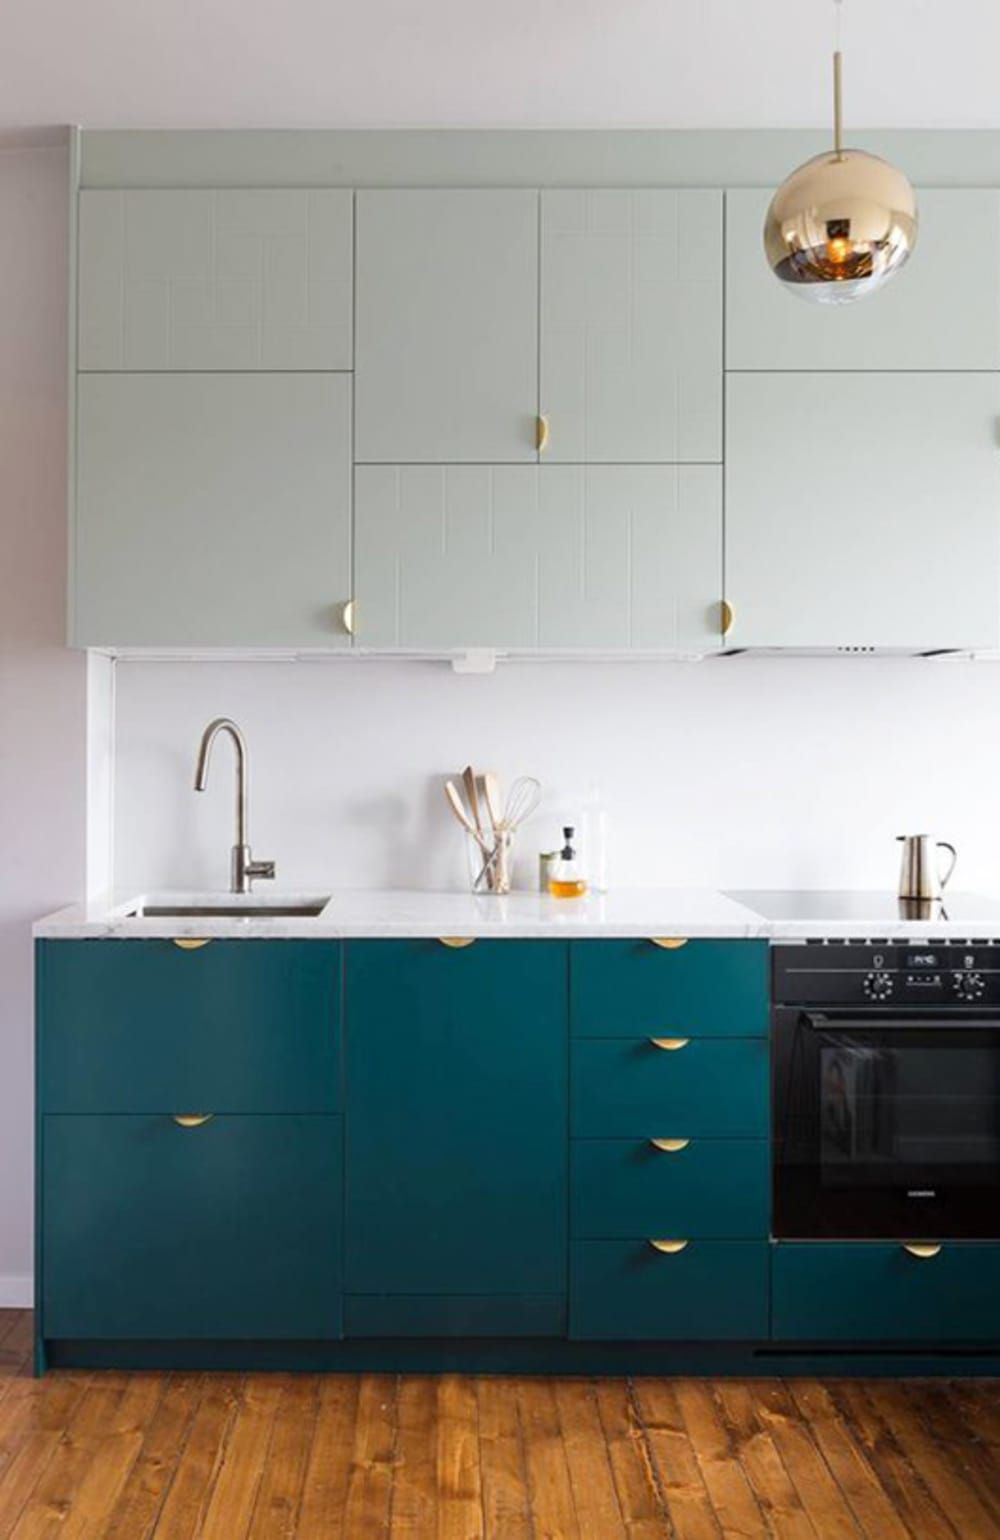 the kitchen cabinet color i m obsessed with in 2020 teal kitchen kitchen cabinets color on kitchen cabinets color combination id=57873